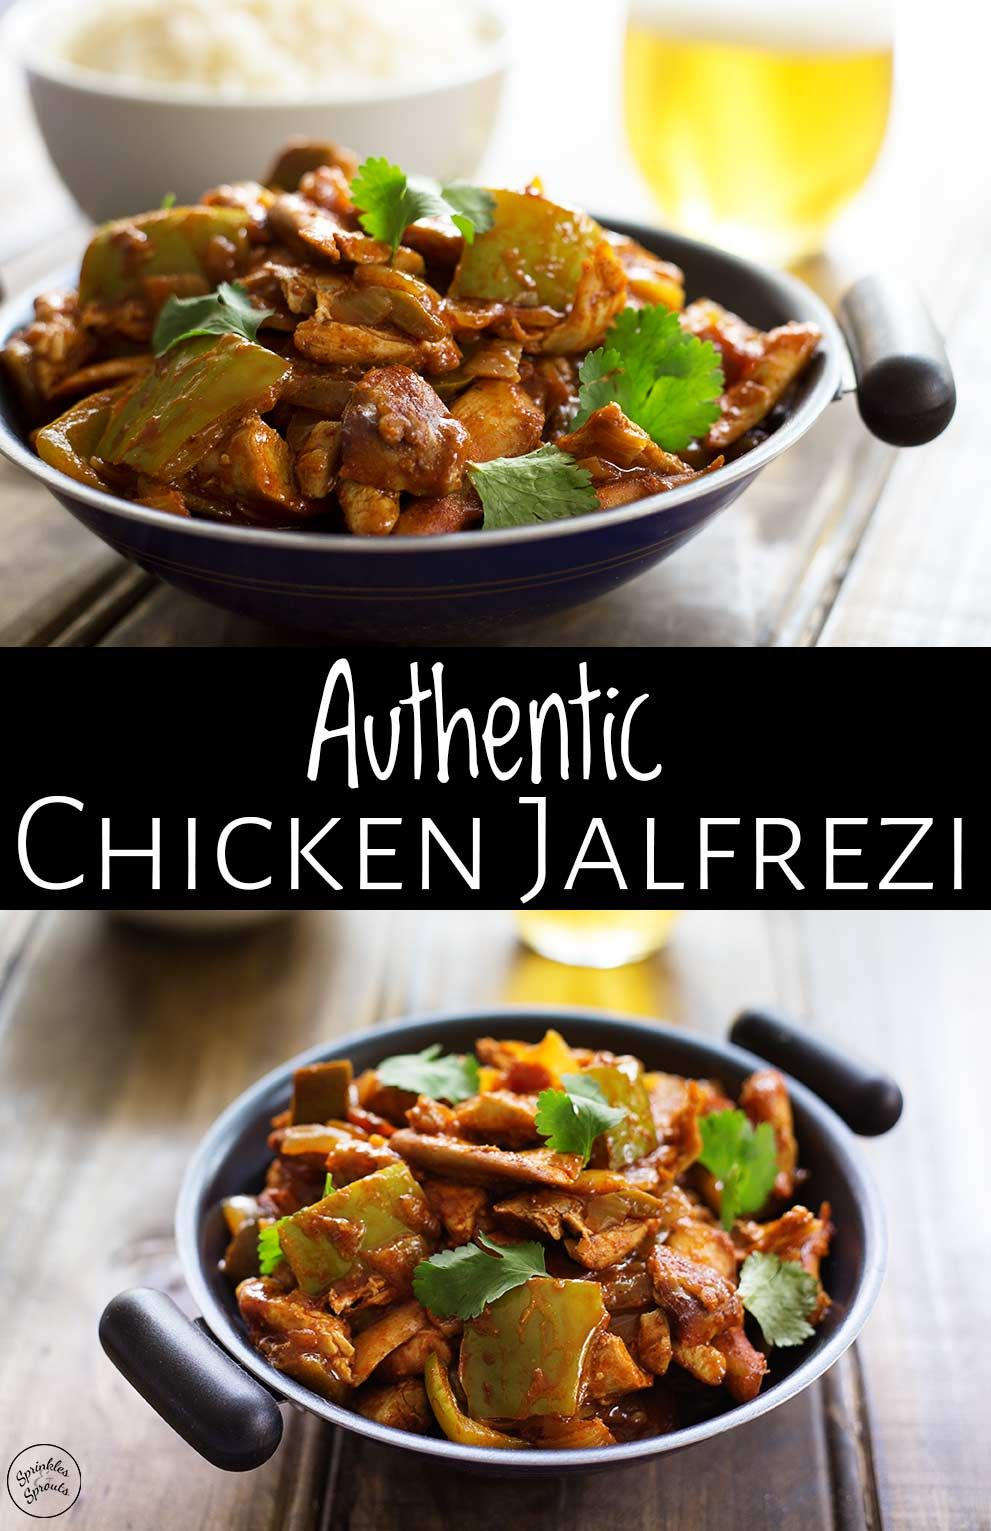 This Authentic Chicken Jalfrezi Is A Delicious And Easy Indian Curry That Is Big And Bold On F Curry Recipes Indian Chicken Jalfrezi Recipe Indian Food Recipes